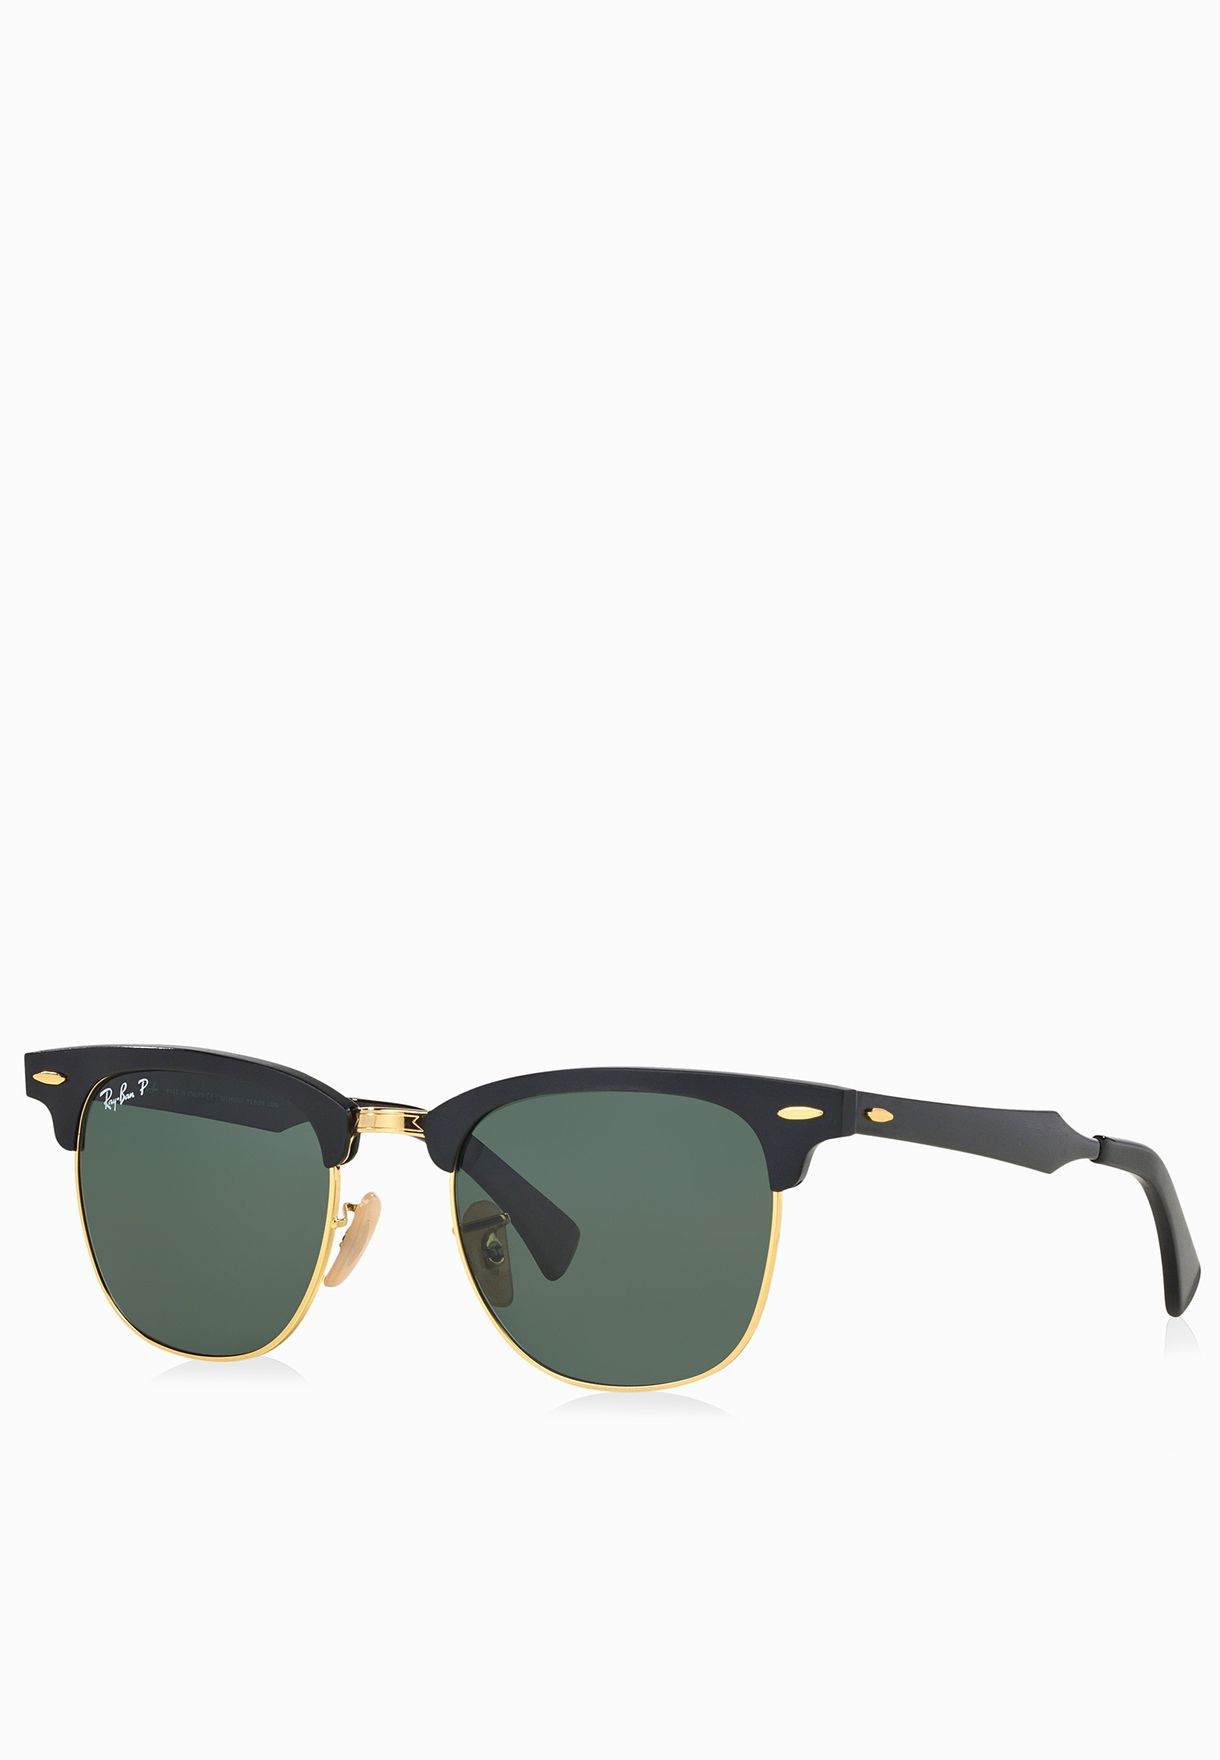 ab5461e630 Shop Ray-Ban black 0RB3507 Clubmaster Aluminum ...